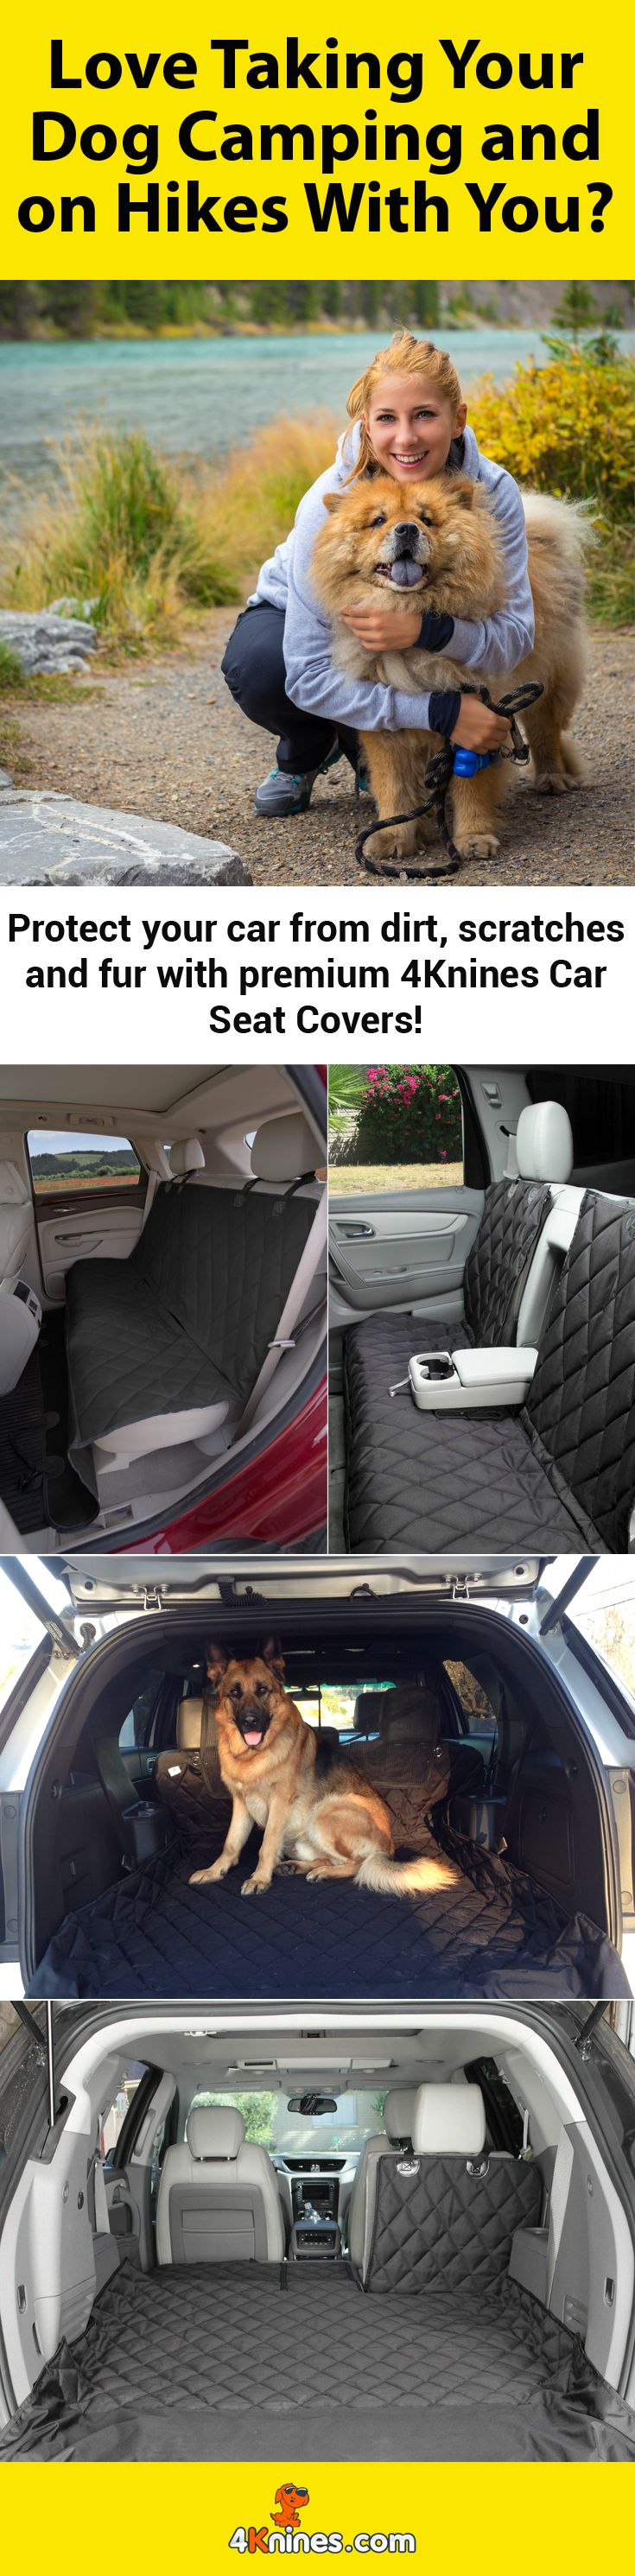 Do you love bringing your dog everywhere, but worry about messing up your car seats? Get a premium 4Knines Car Seat Cover today to not only protect your car but also keep it looking stylish! http://4knines.com/collections/all/